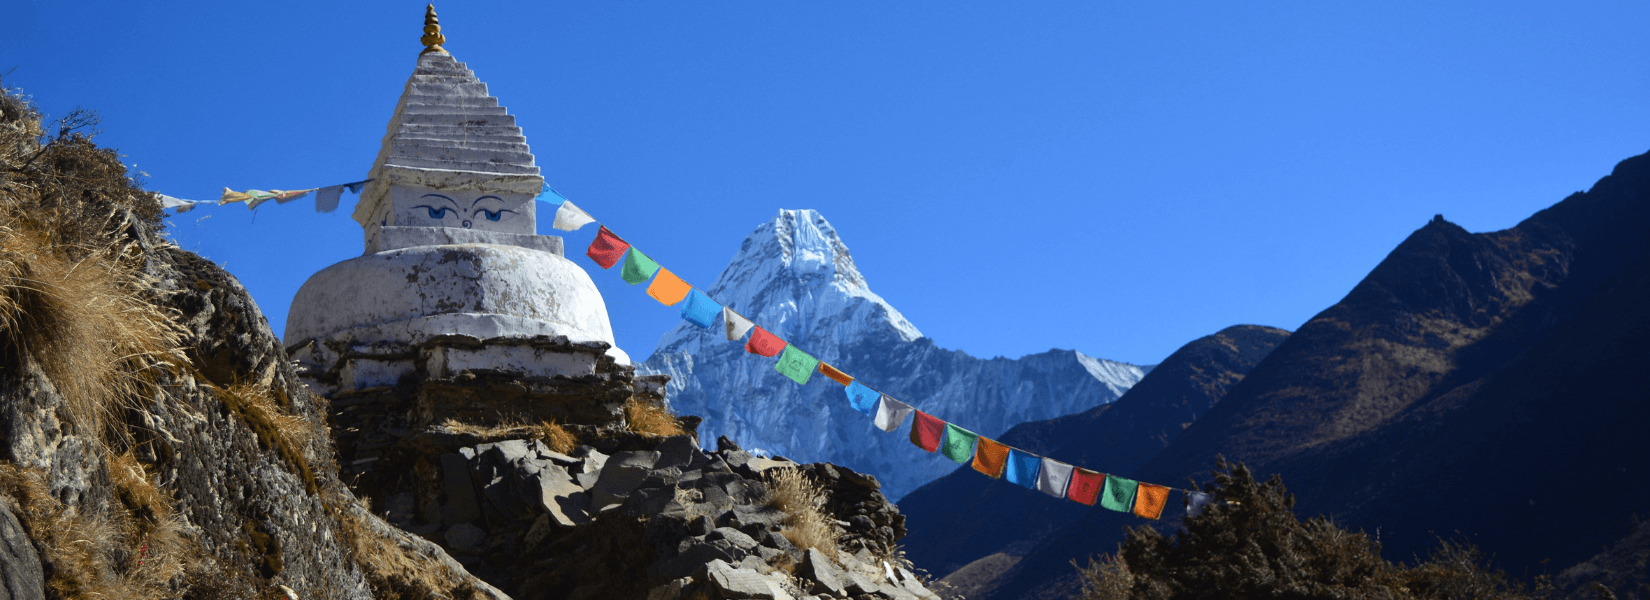 Everest Luxury Trekking